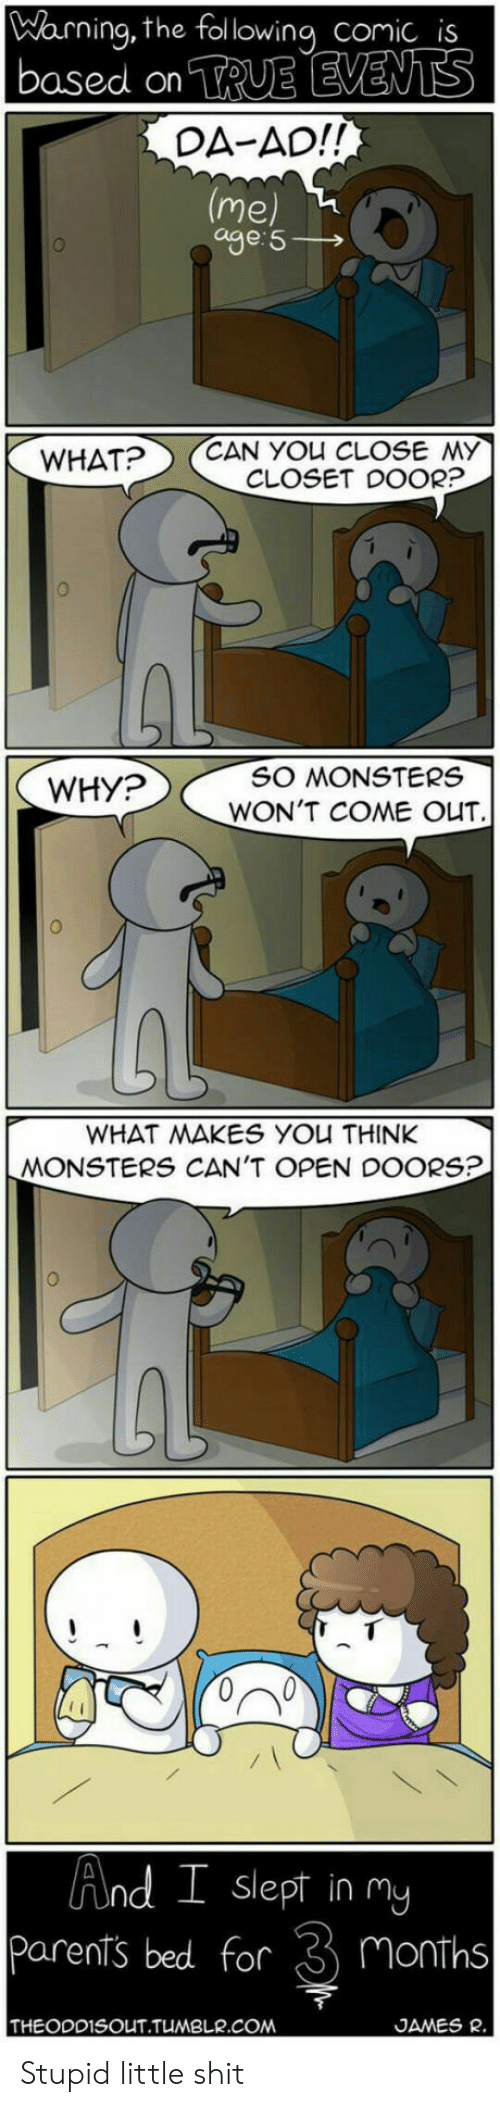 Cant Open: Warning, the following comic is  based on TRUE EVENTS  DA-AD!!  (me  age 5  CAN YOU CLOSE MY  CLOSET DOOR?  WHAT?  SO MONSTERS  WHY?  WON'T COME OUT  WHAT MAKES YOu THINK  MONSTERS CAN'T OPEN DOORS?  And I slept in my  Parents bed for  Months  THEODDISOUT.TUMBLR.COM  JAMES R Stupid little shit